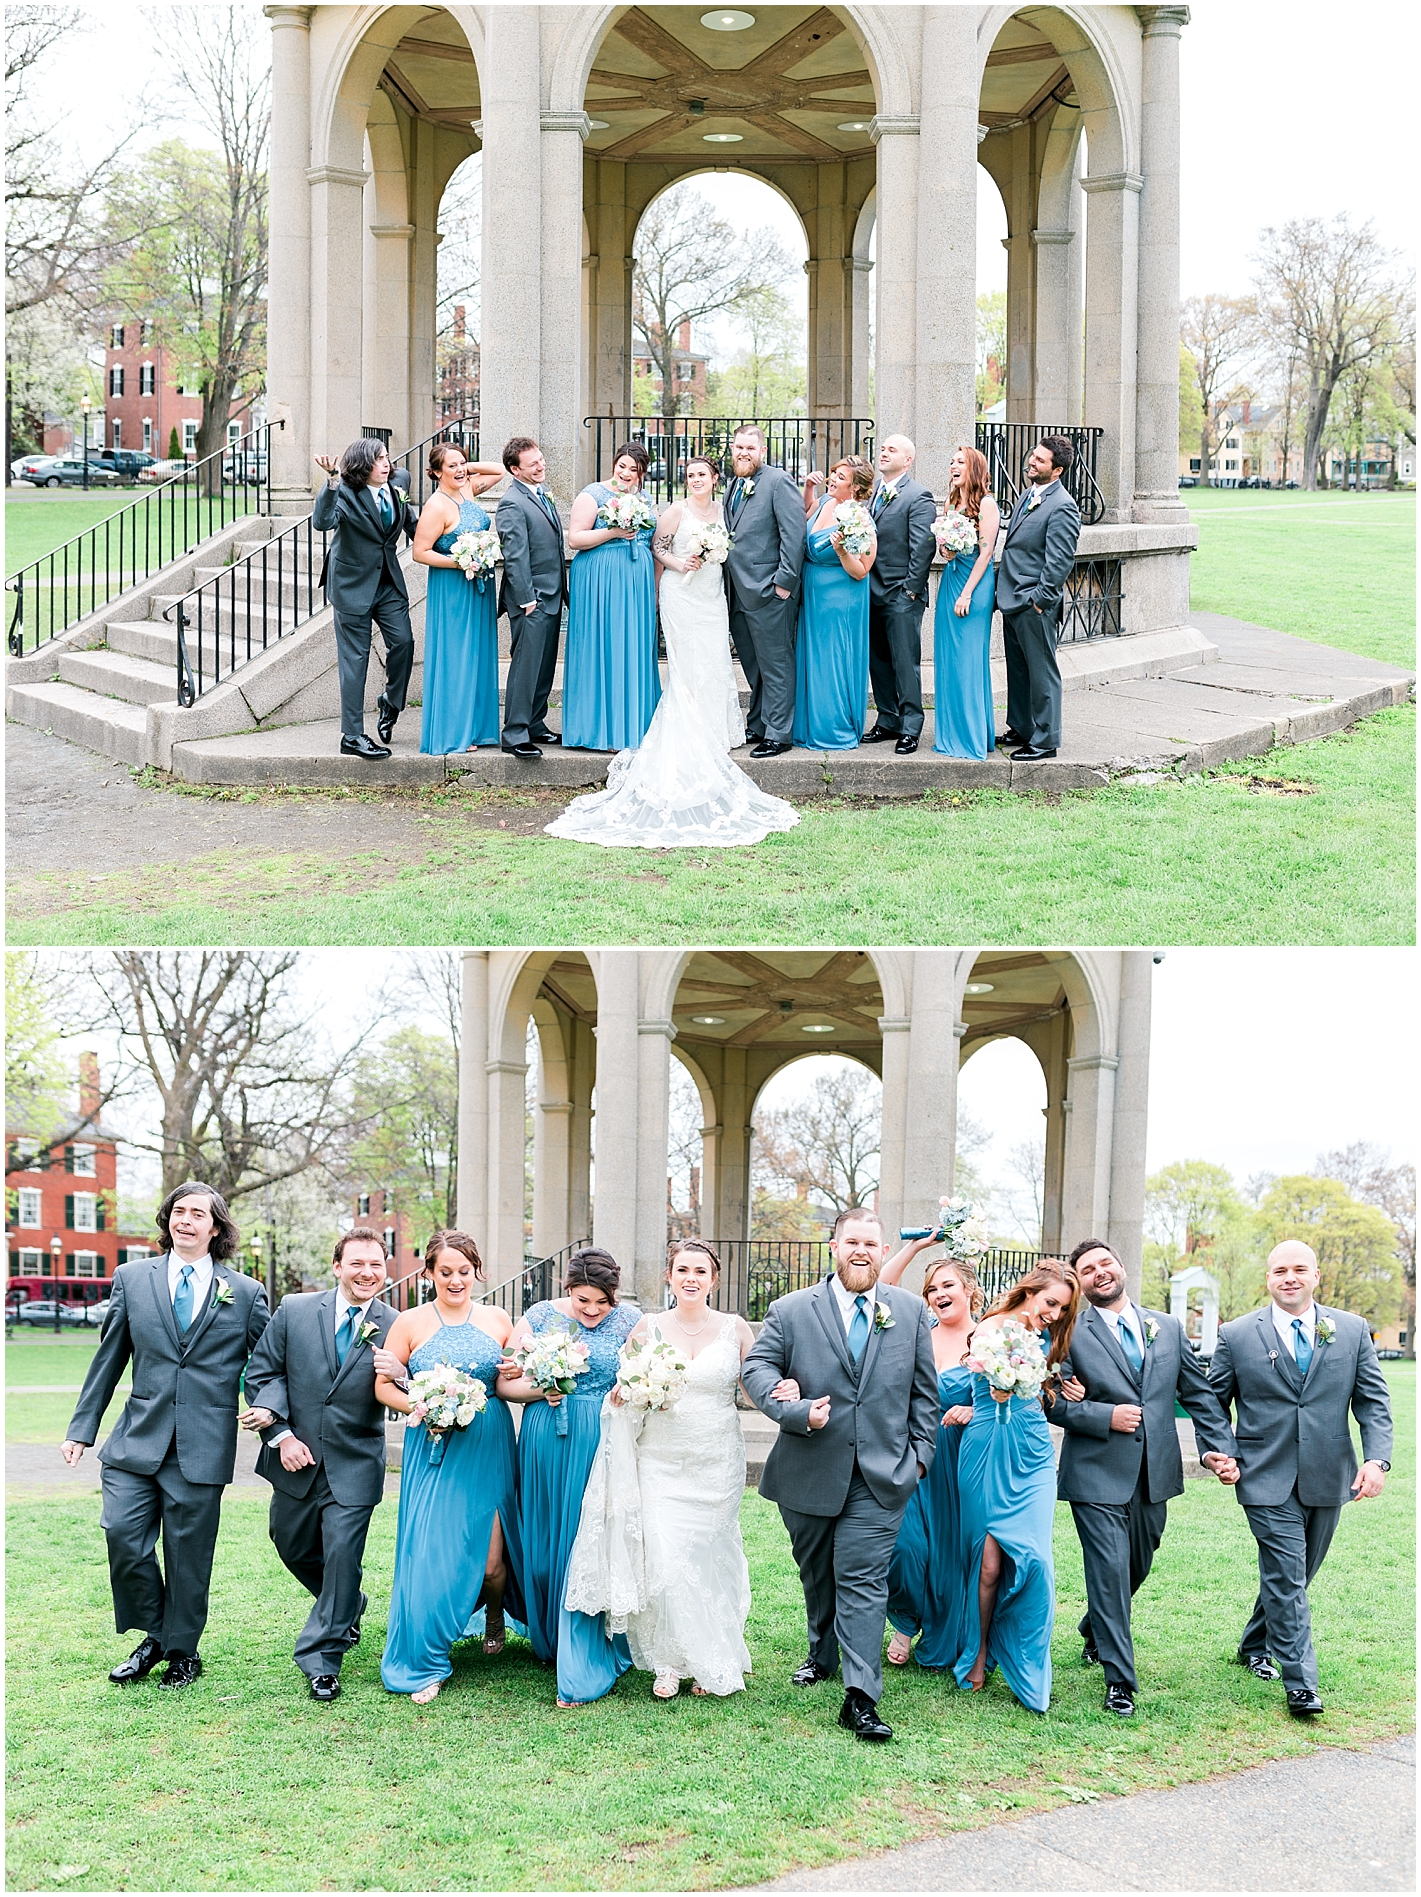 Blue and Gray Wedding Party Colors Photos By Alyssa Parker Photography